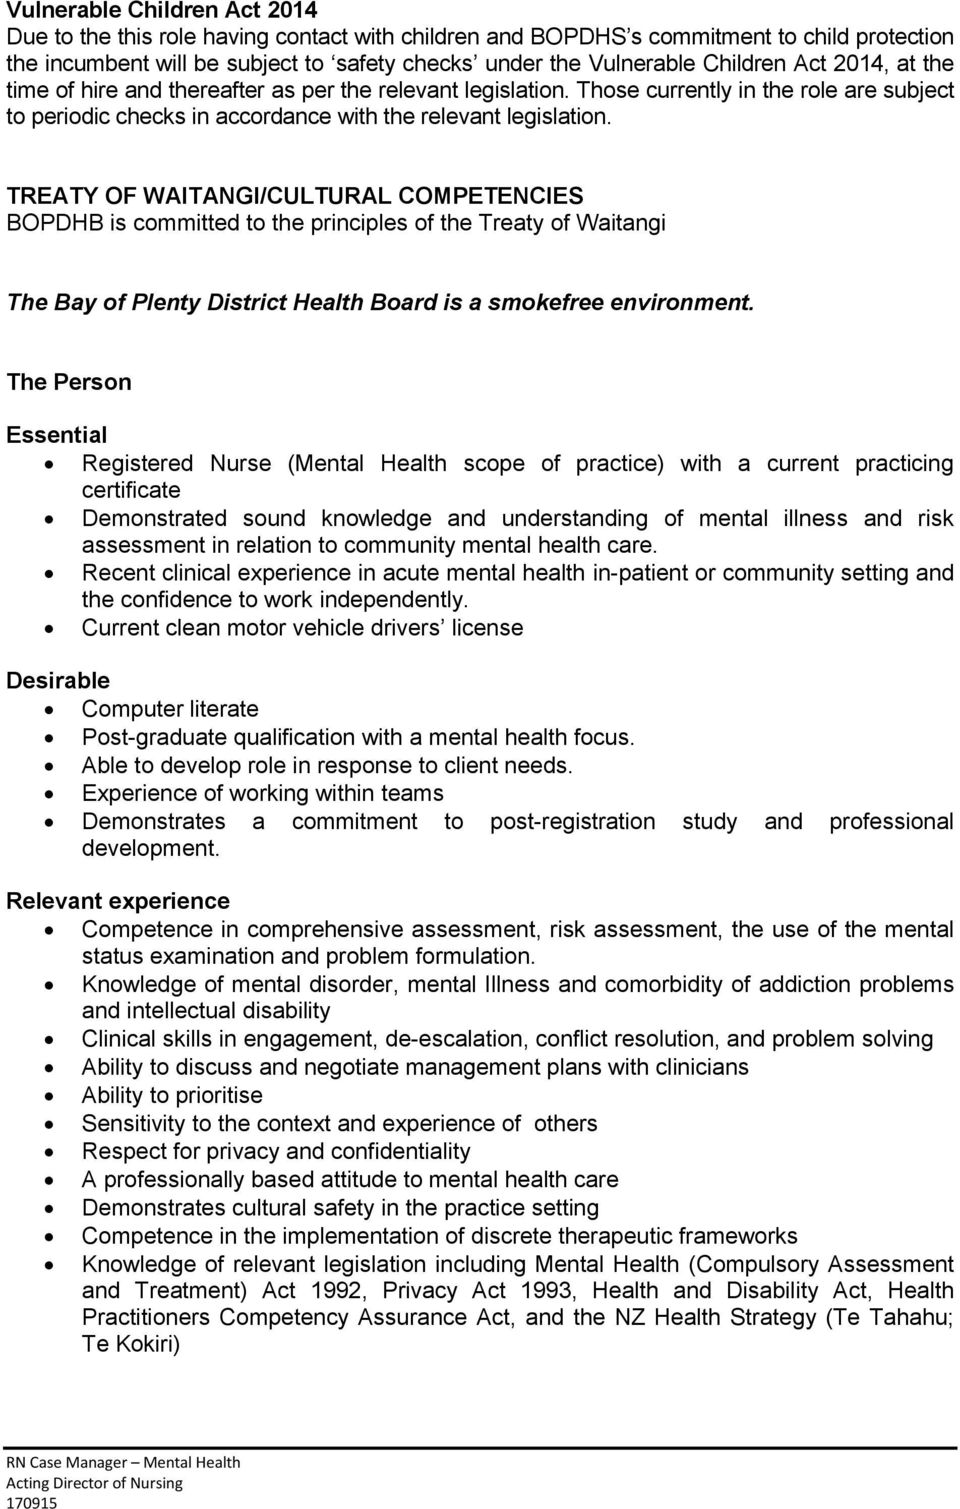 TREATY OF WAITANGI/CULTURAL COMPETENCIES BOPDHB is committed to the principles of the Treaty of Waitangi The Bay of Plenty District Health Board is a smokefree environment.